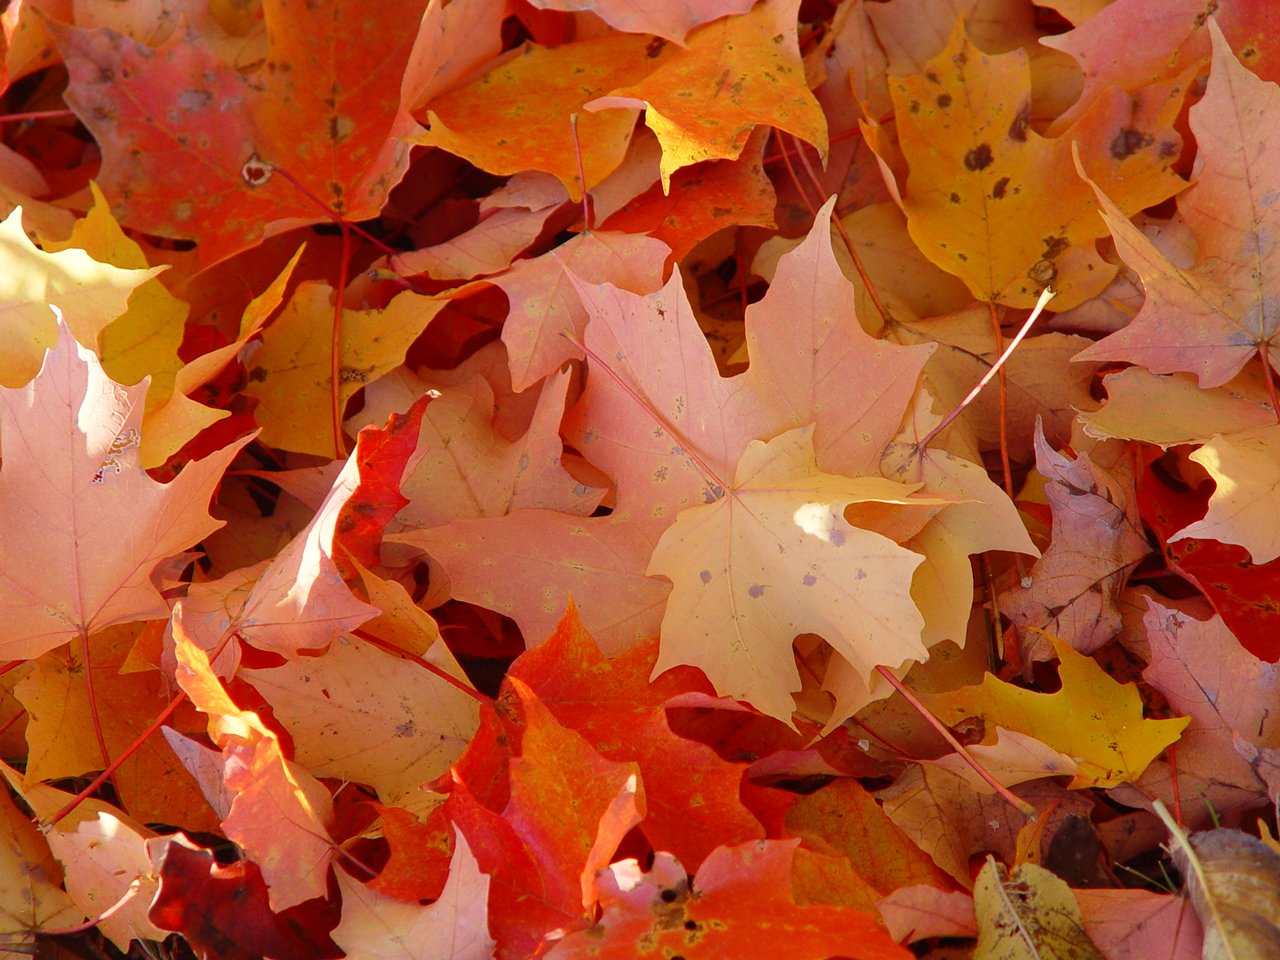 Fall Free Wallpaper Cave Fall In Love With Foliage This Autumn On An Amazing